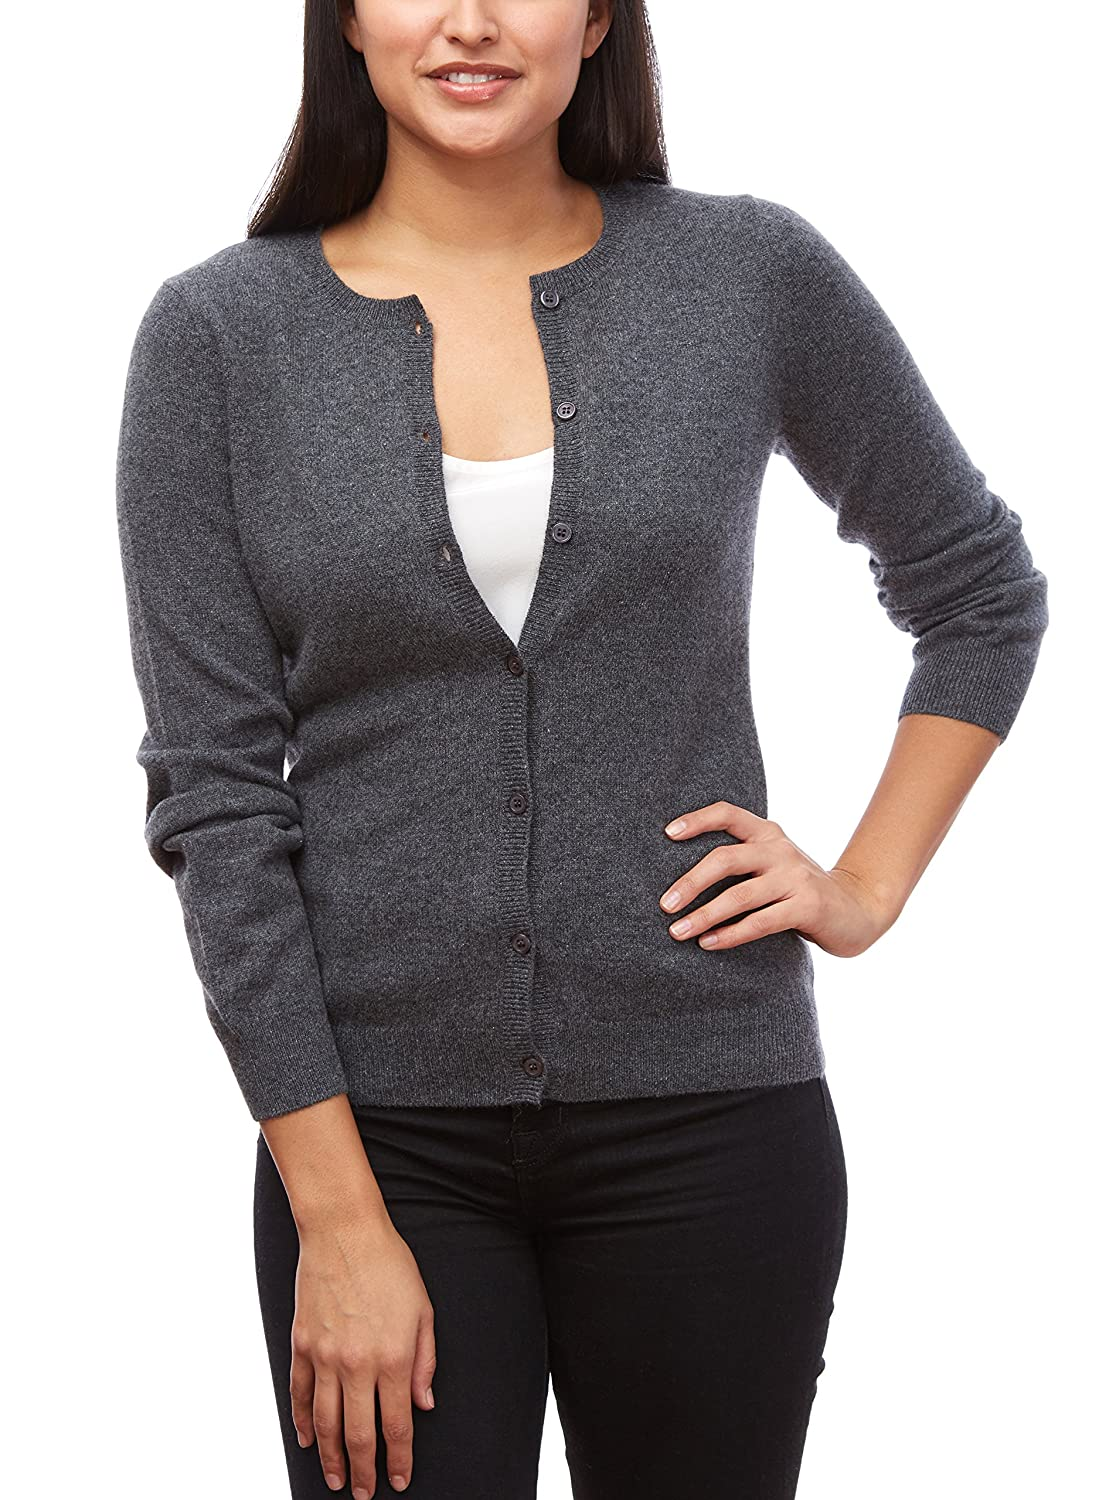 Elephant MoonCats 100% Cashmere Cardigan sweater for women soft button front crew neck